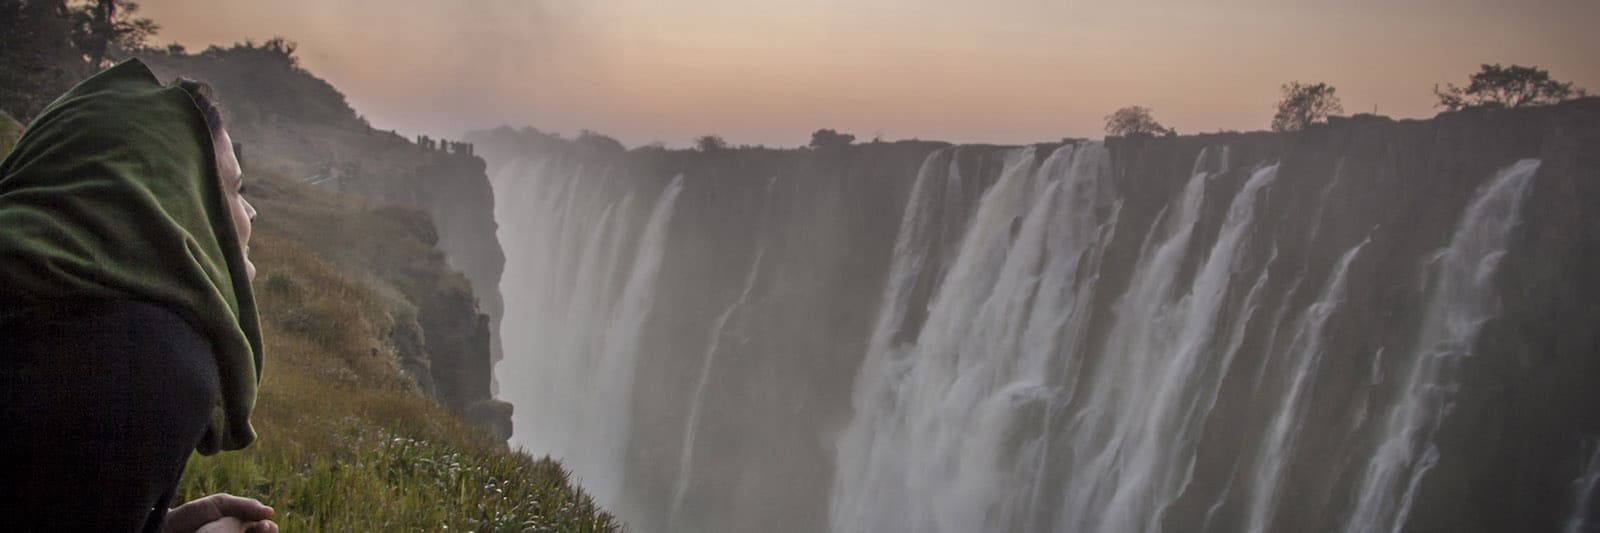 8 Quick Facts on the Victoria Falls